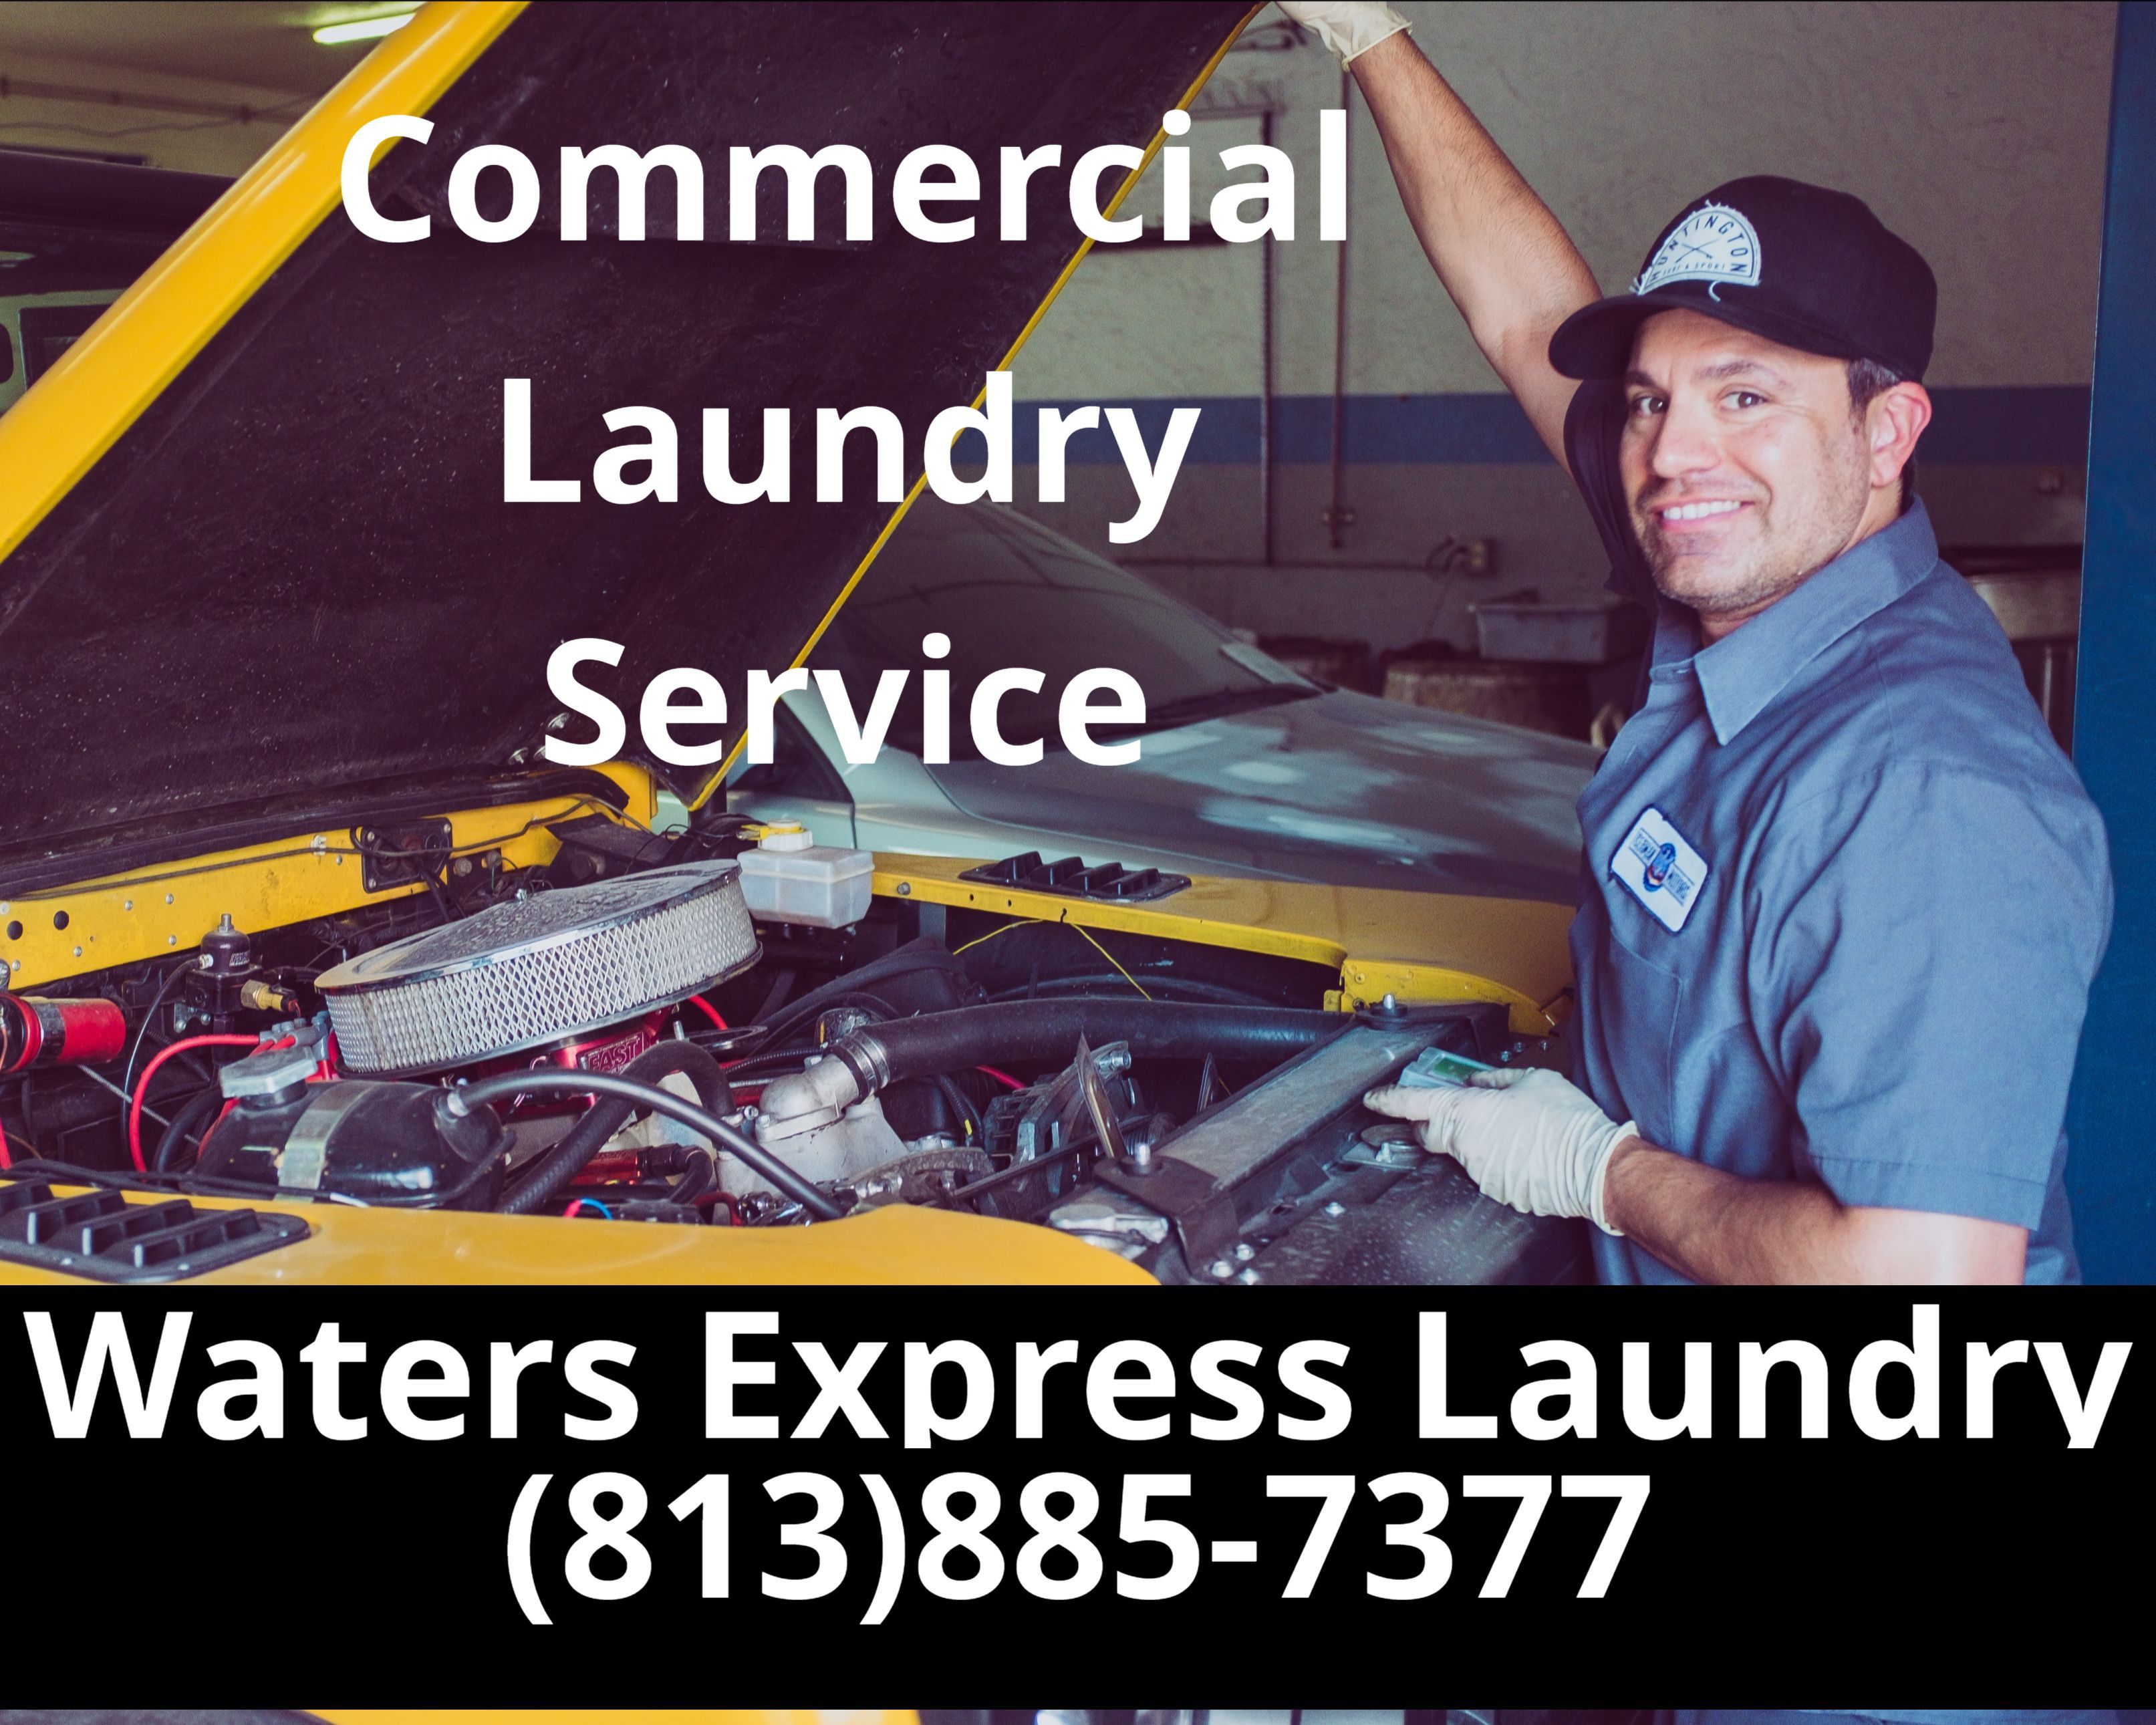 Commercial Laundry Service Waters Express Laundry Center In